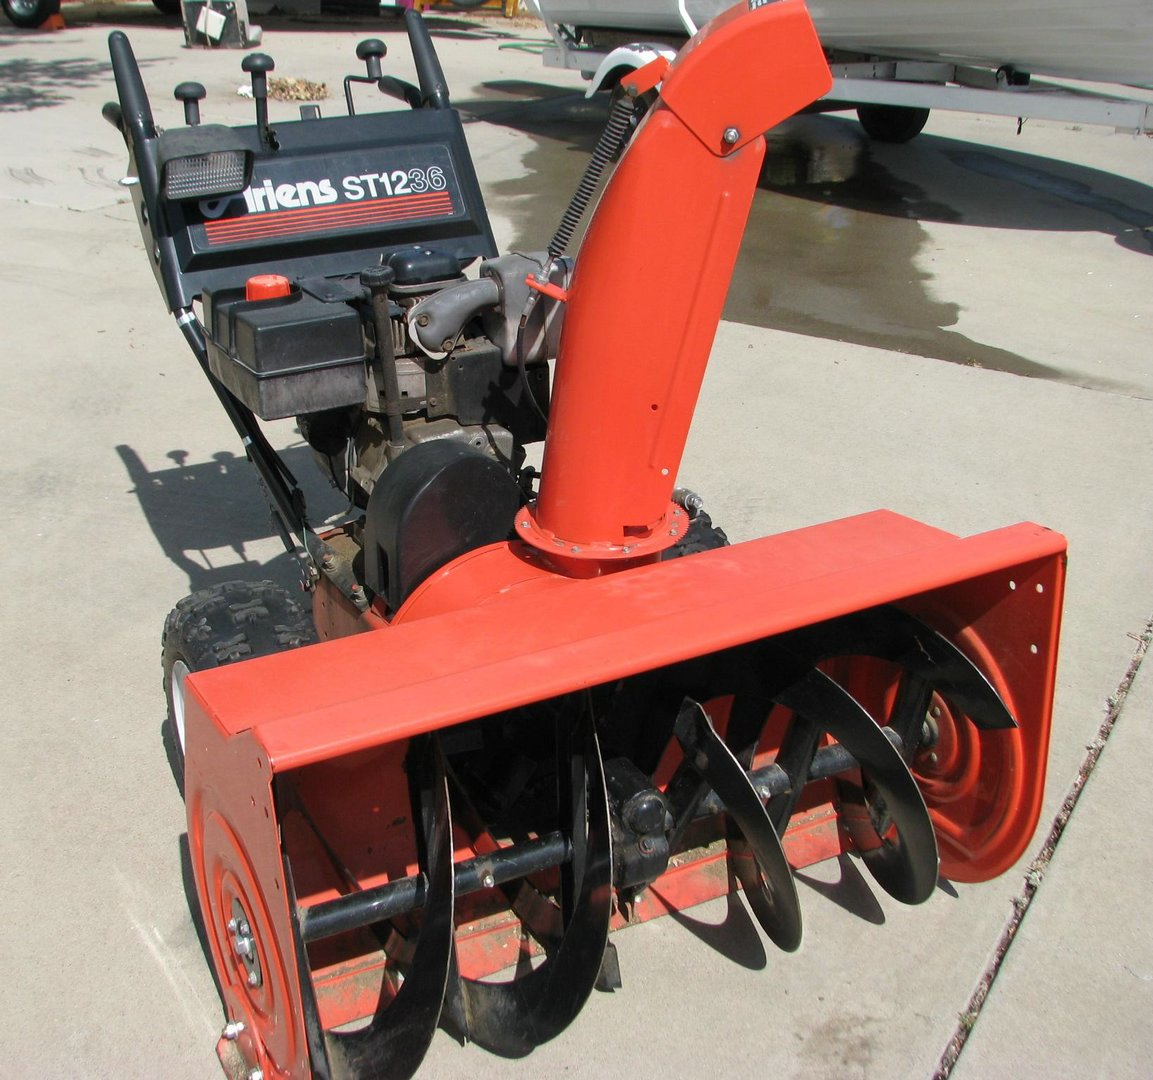 hight resolution of 5051 image for item 5051 ariens st1236 36 snow thrower